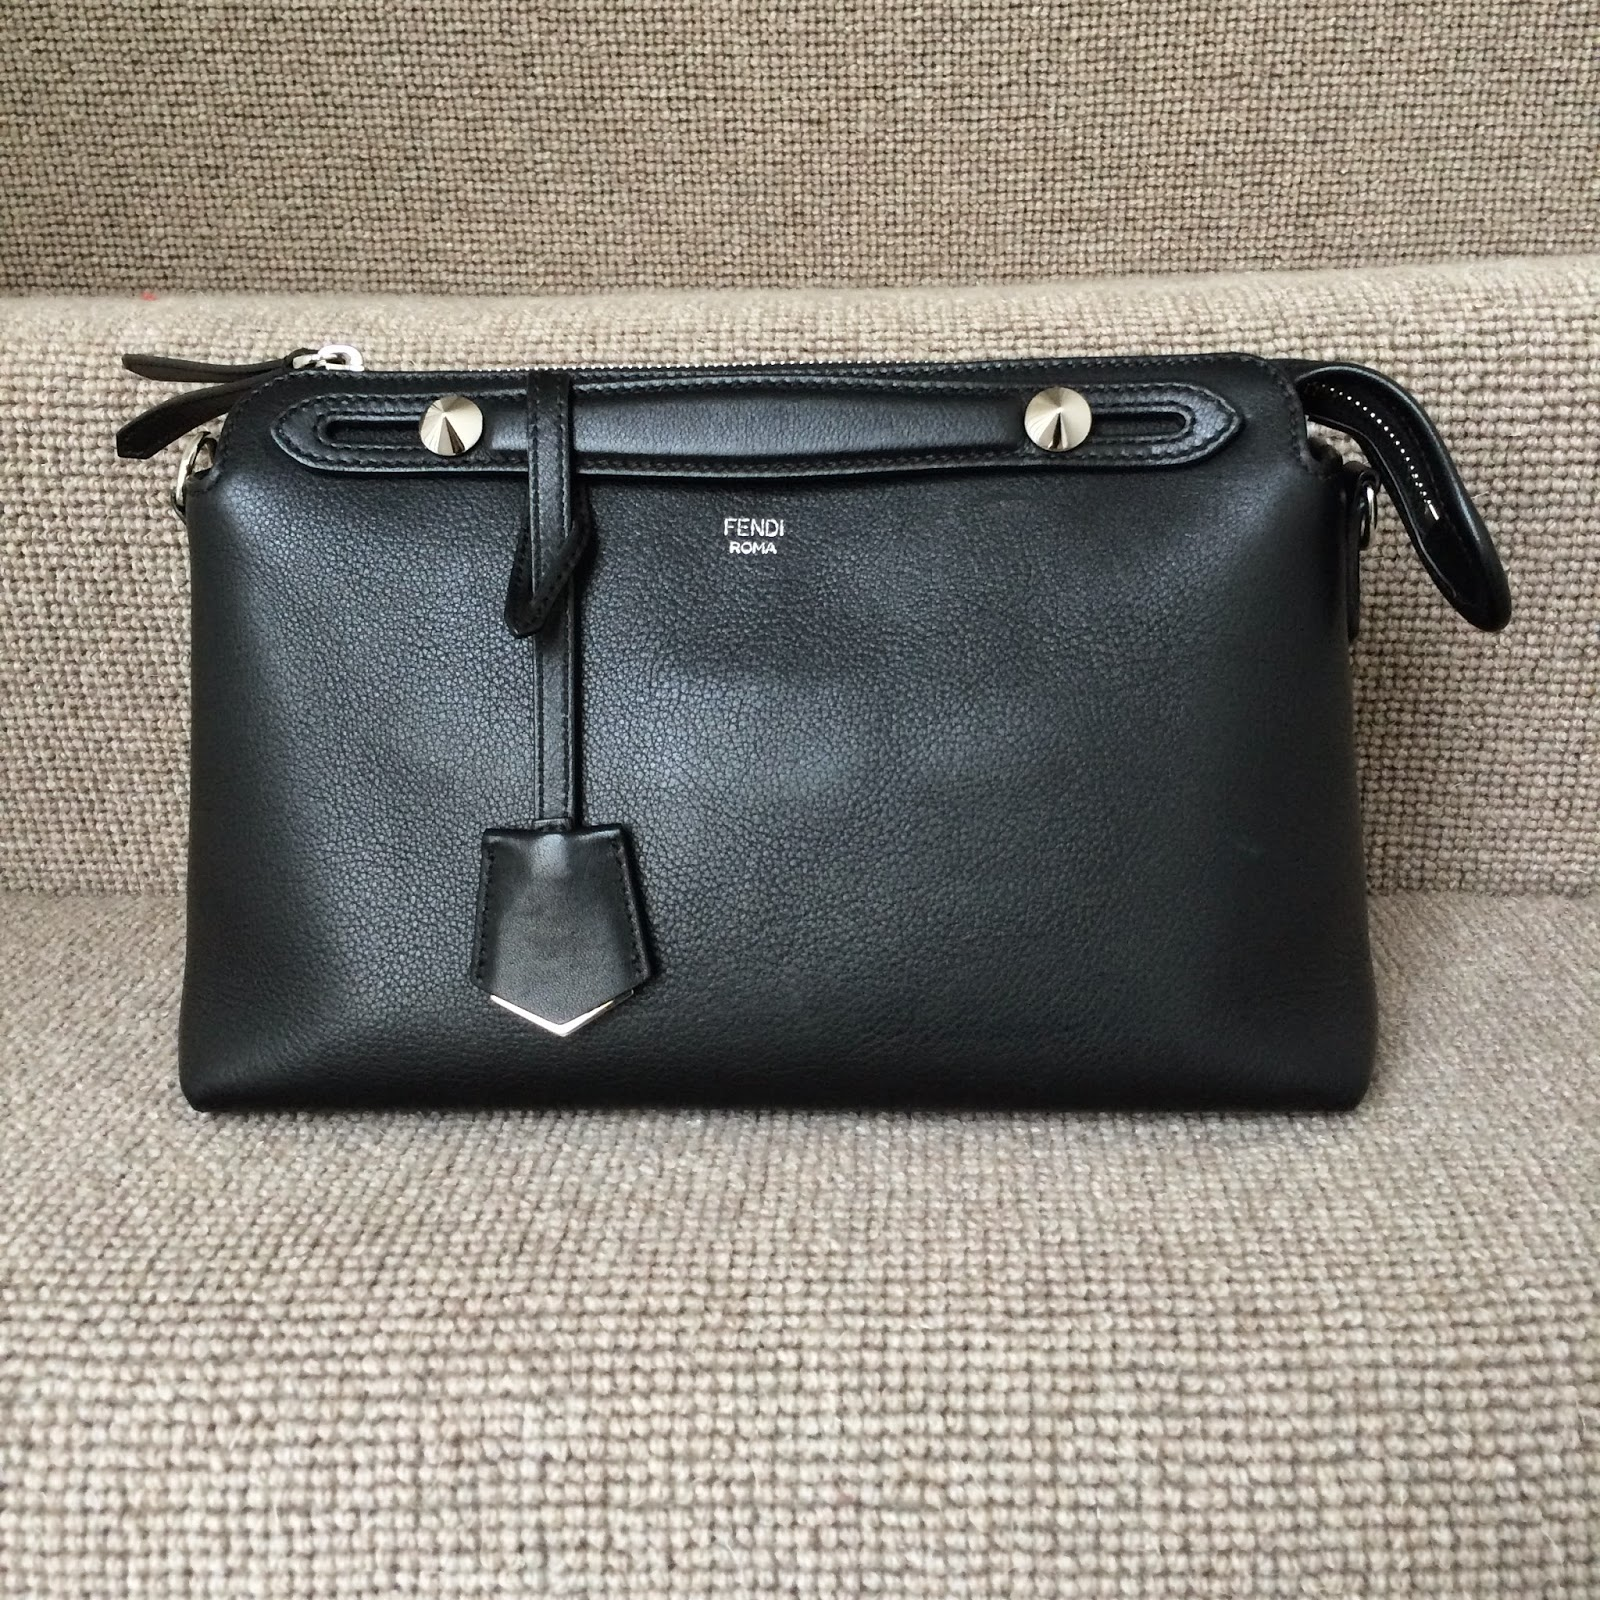 Black Fendi By The Way piccolo (smaller of two sizes offered) bag.  Dimensions fea2dc0b58230